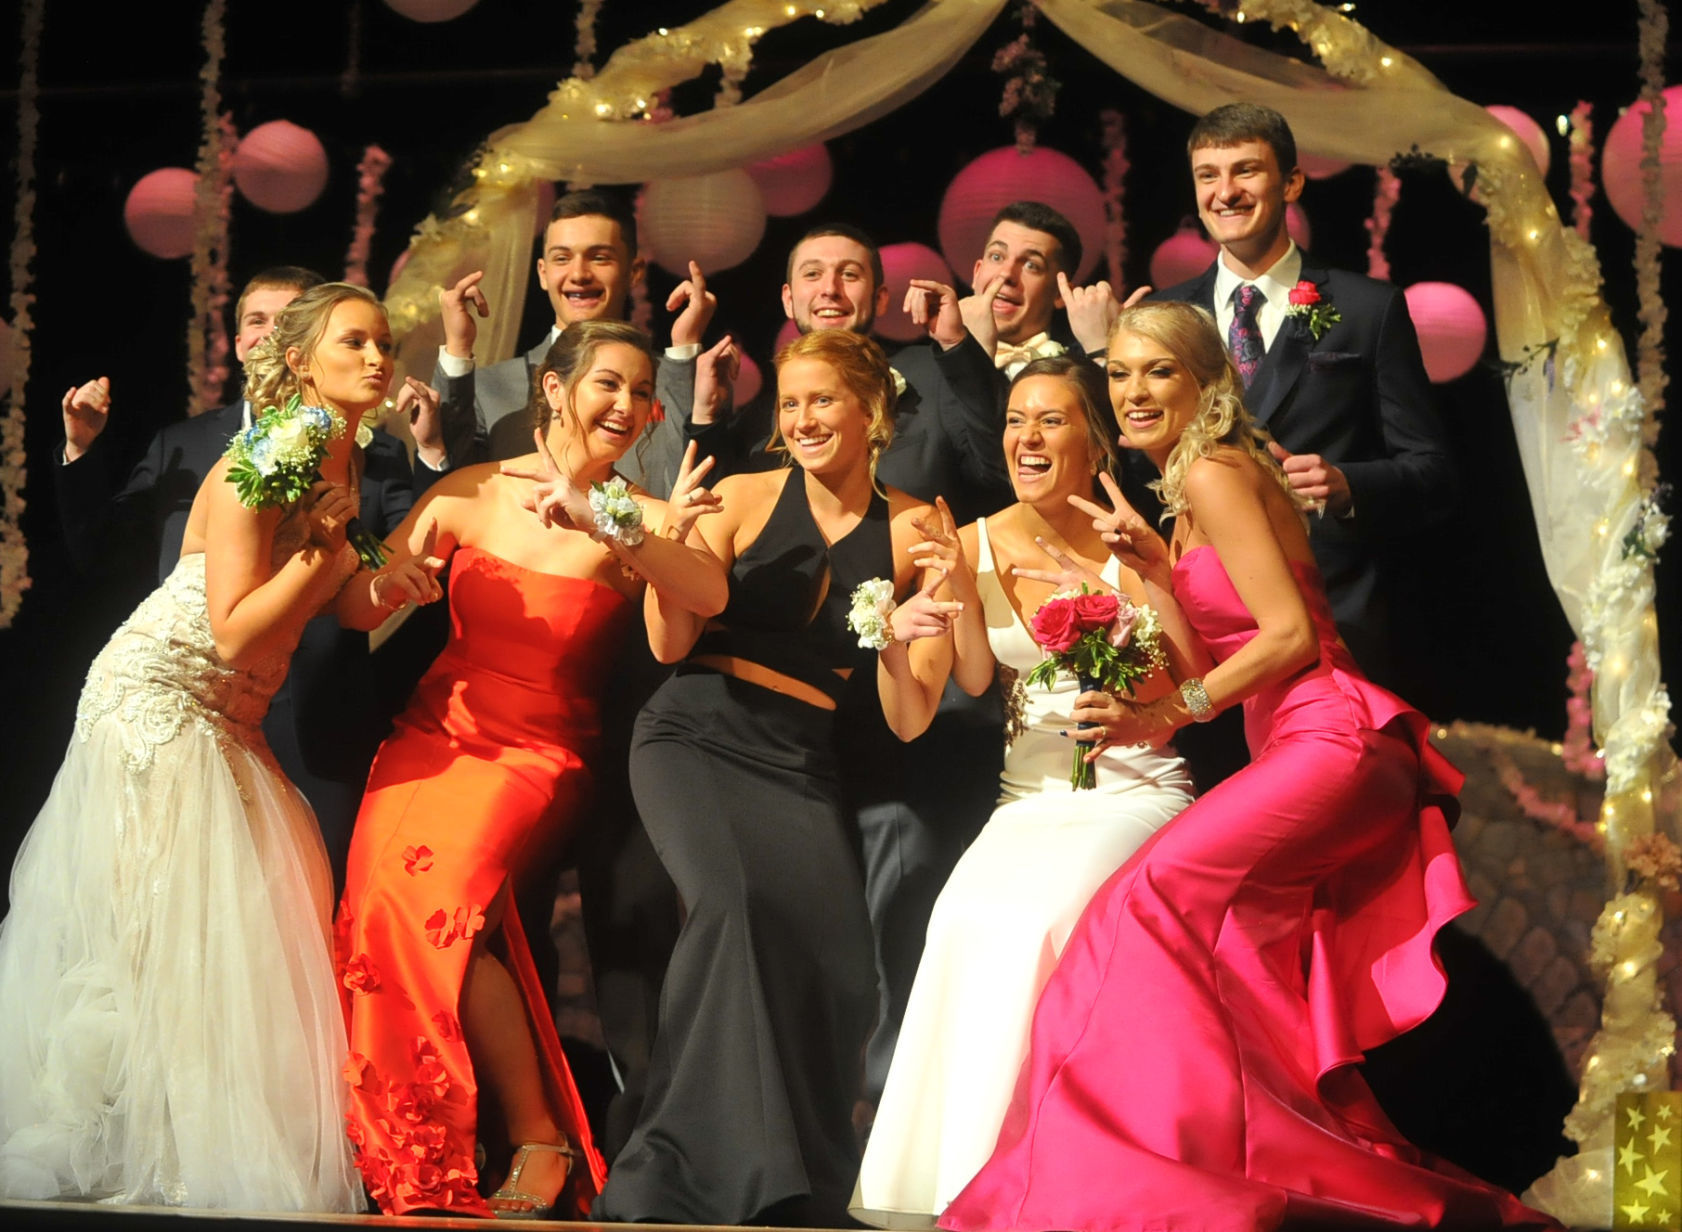 A night to remember: Prom season gets underway